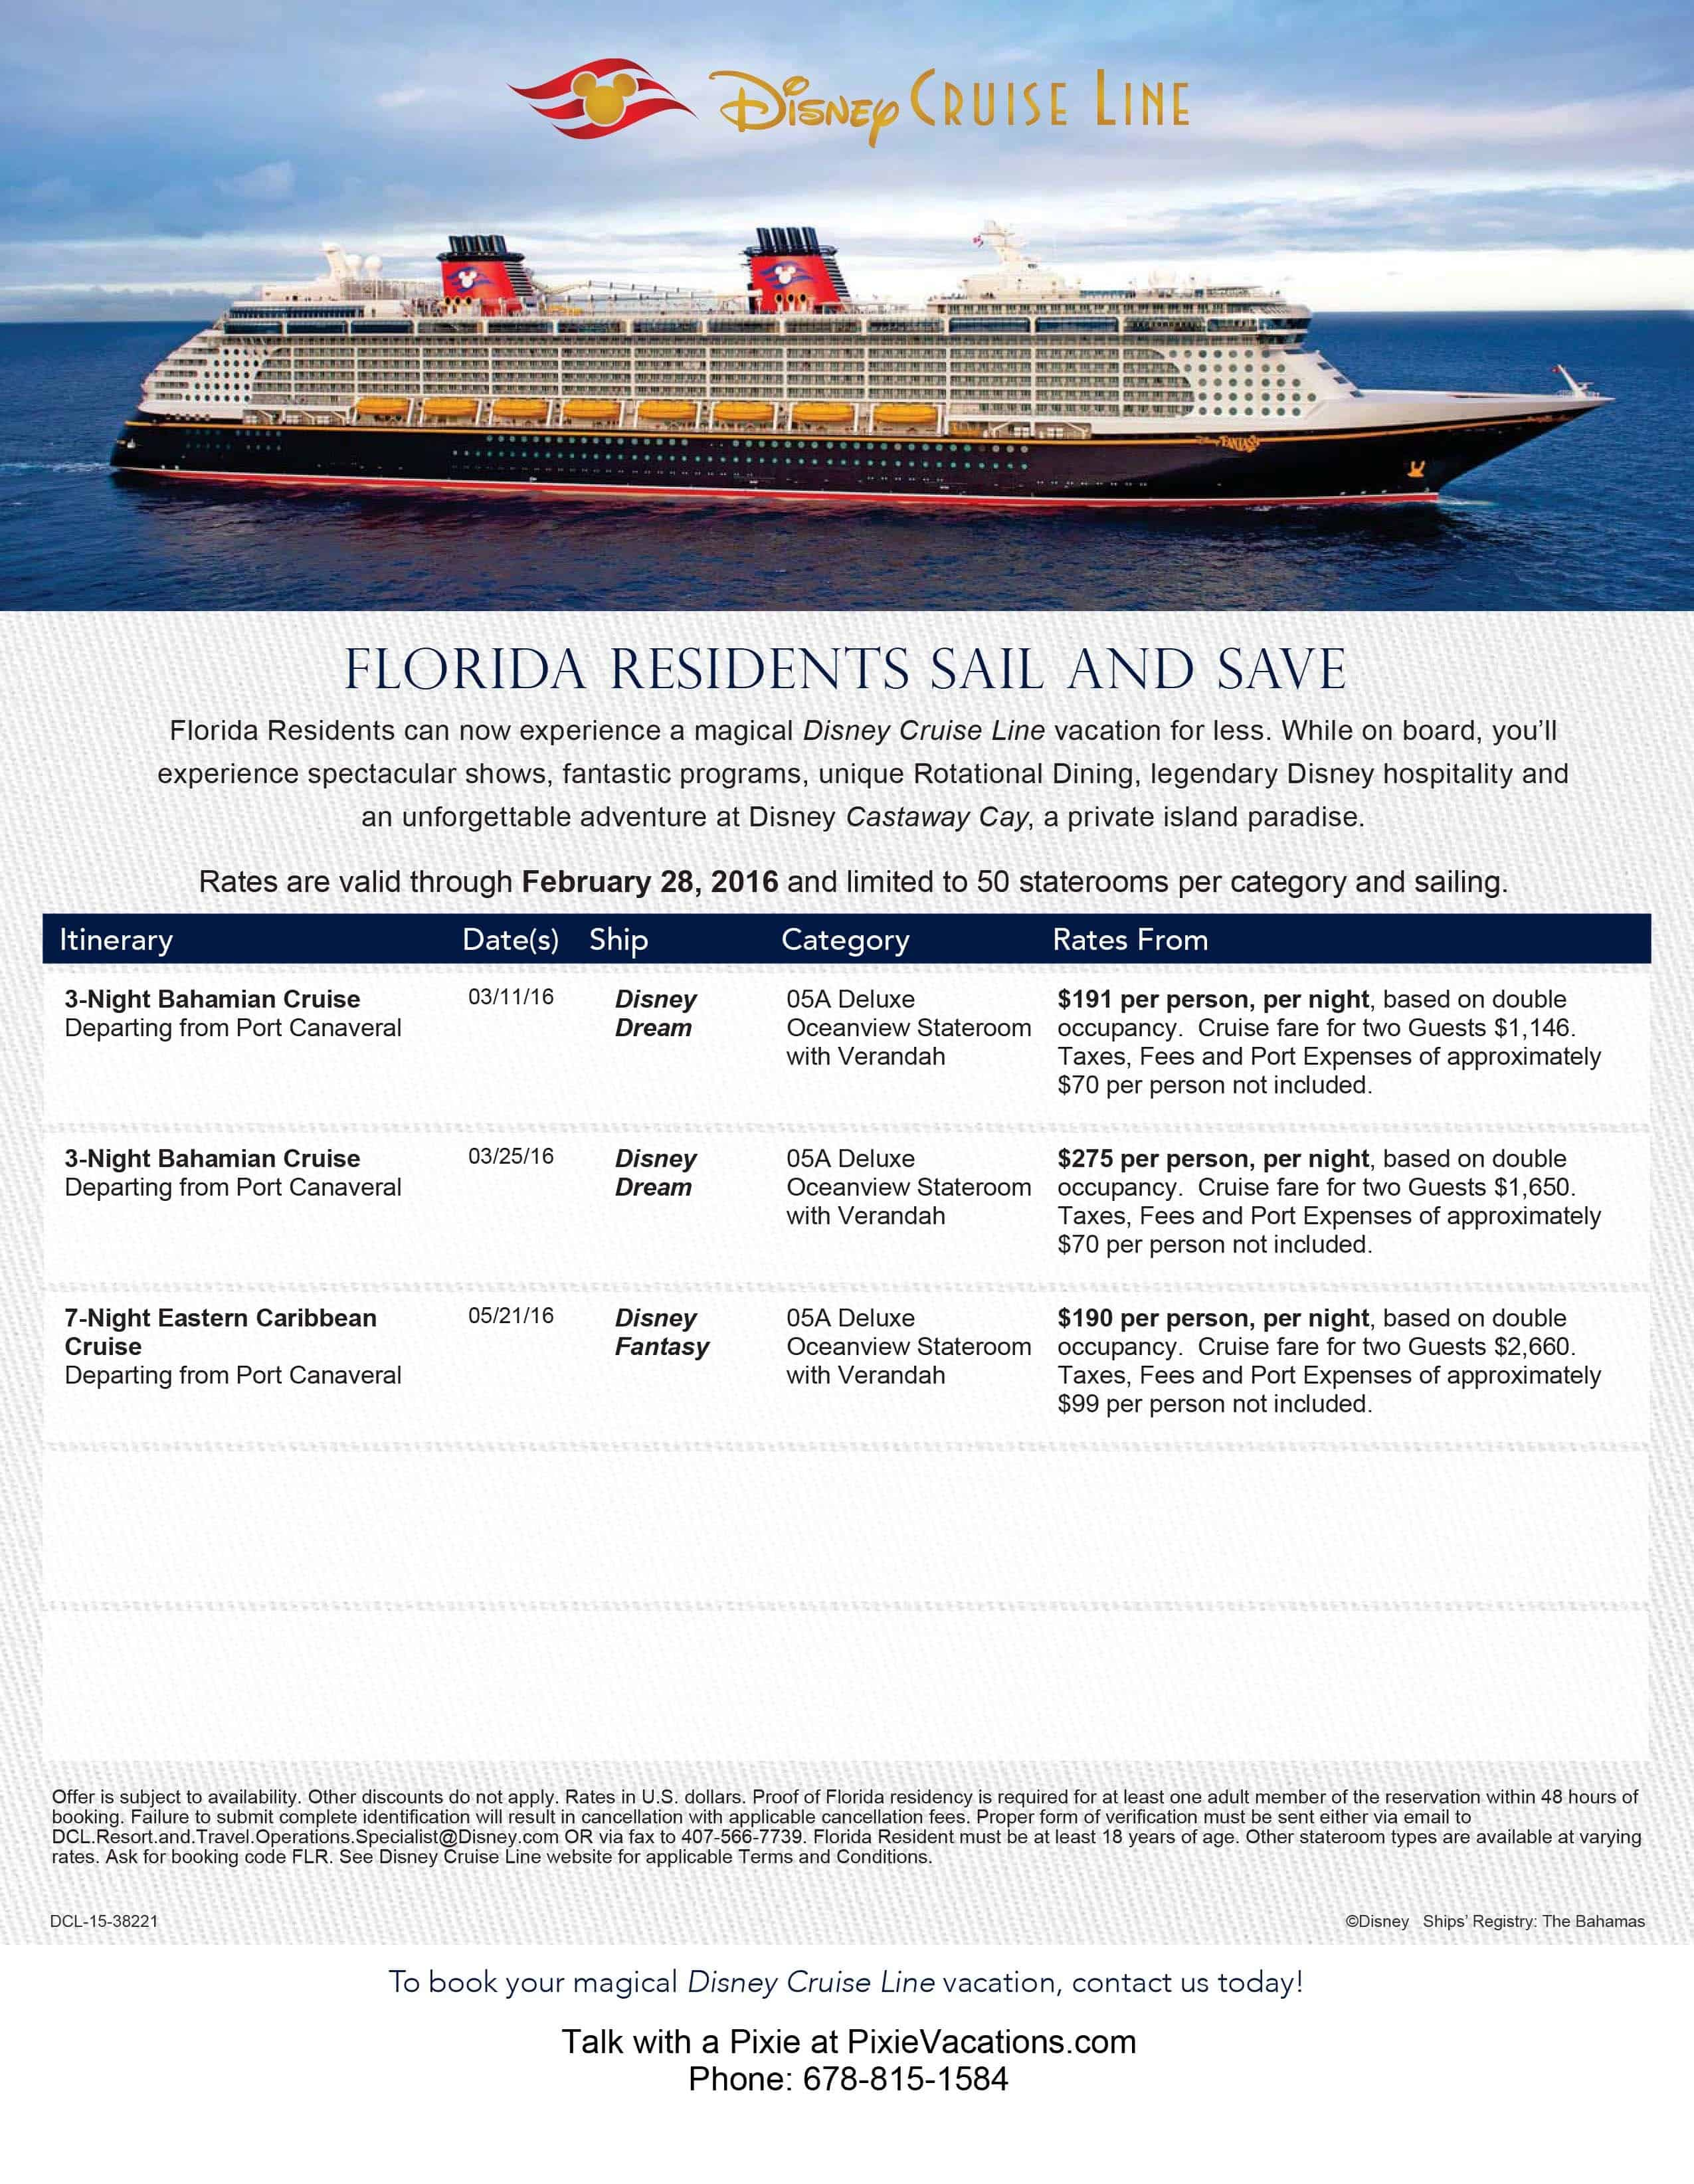 Best cruise deals florida residents